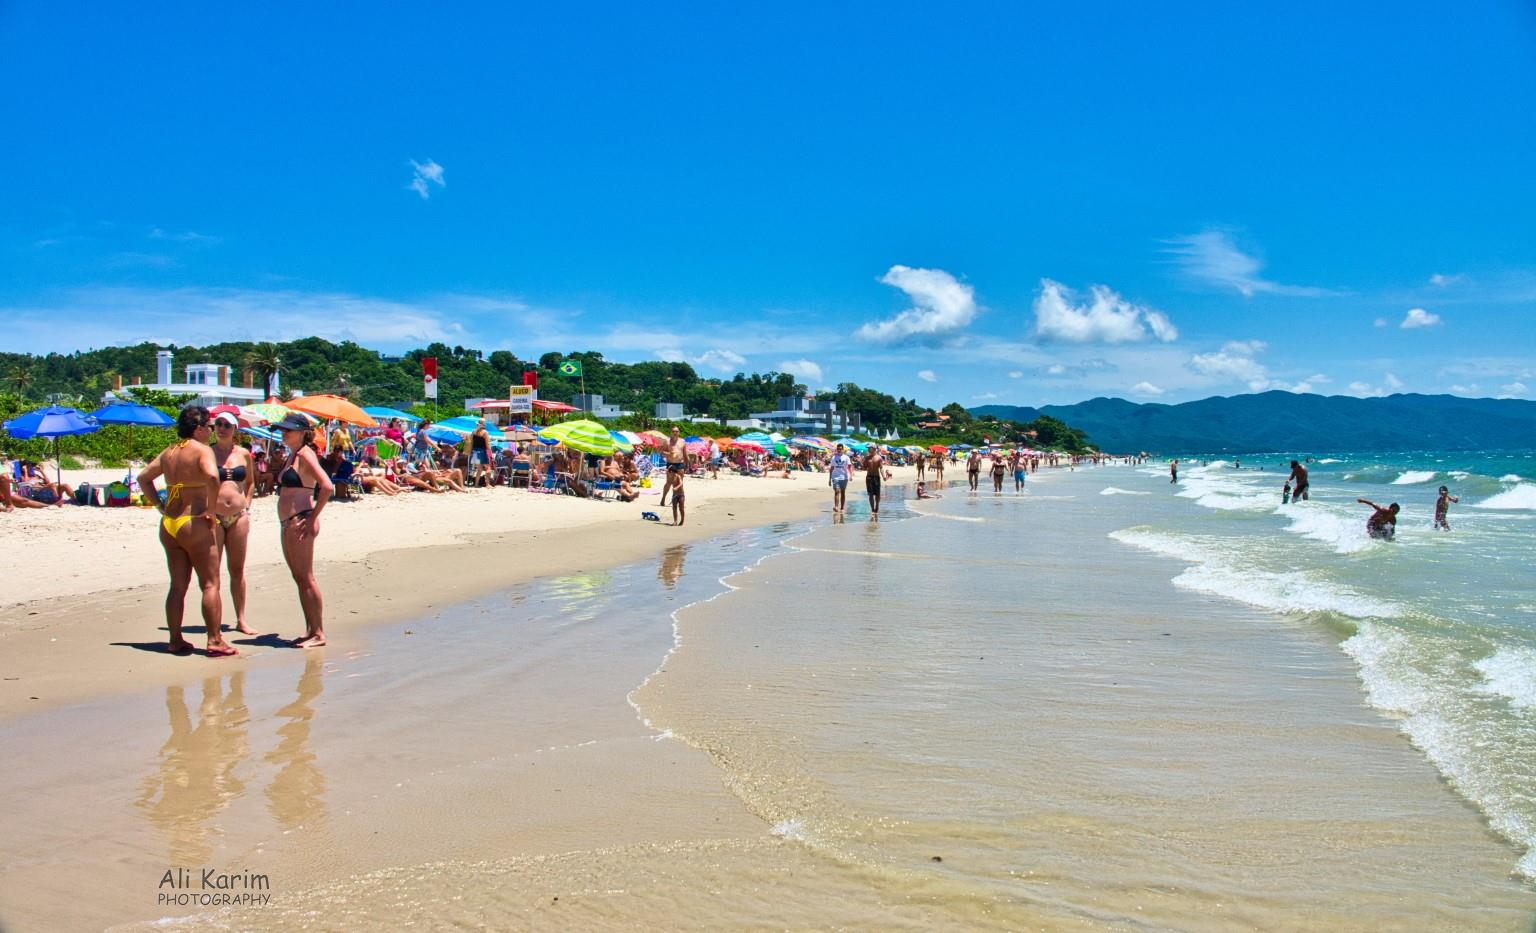 Florianópolis, Brazil Beautiful Praia Jurerê Internacional beach on the north of the island, facing the mainland, was the best, warmest beach